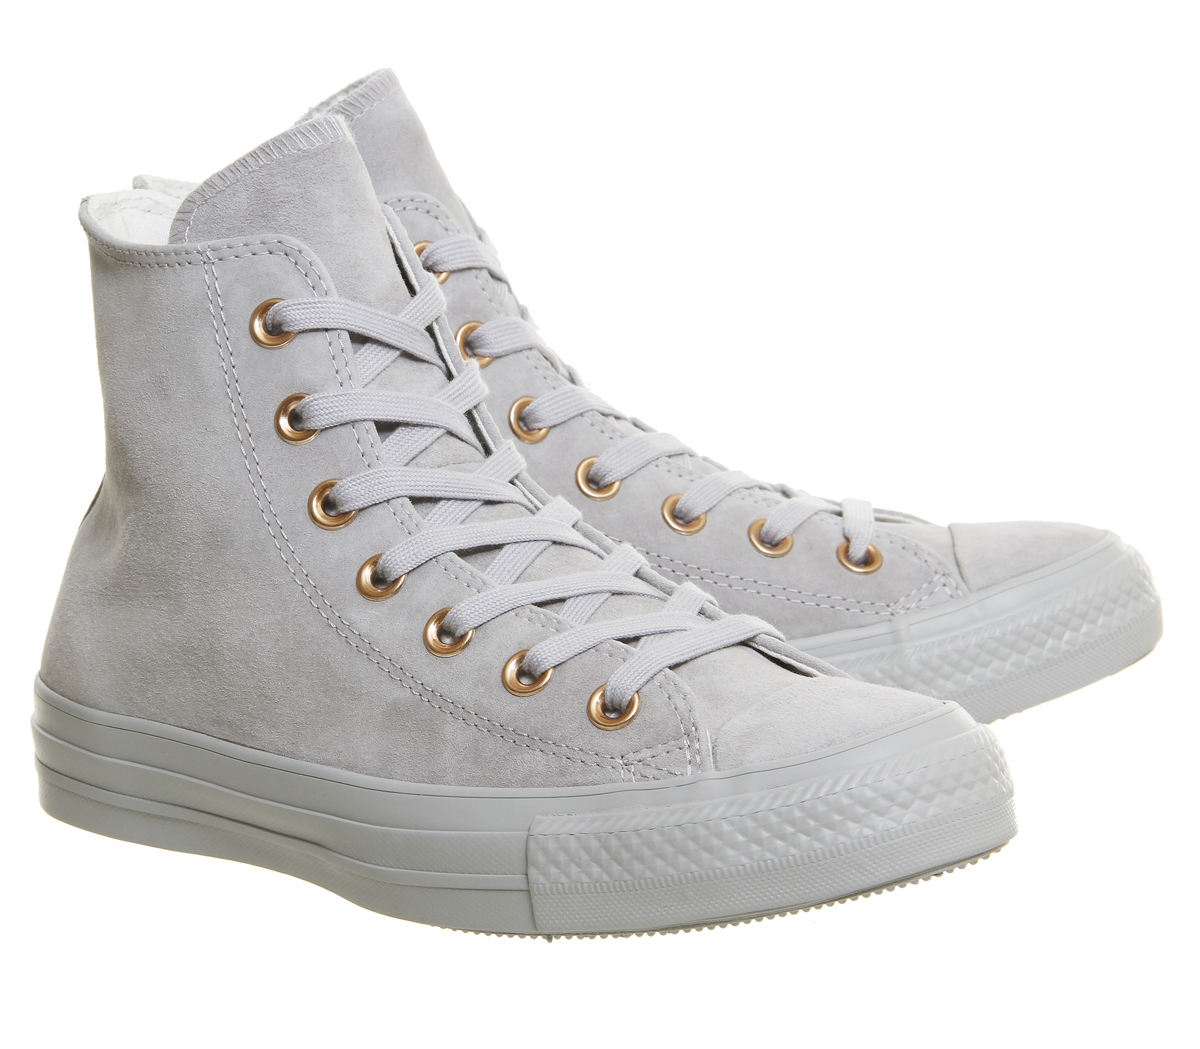 CONVERSE All Star Pelle Ash Grey / Grigio Oro